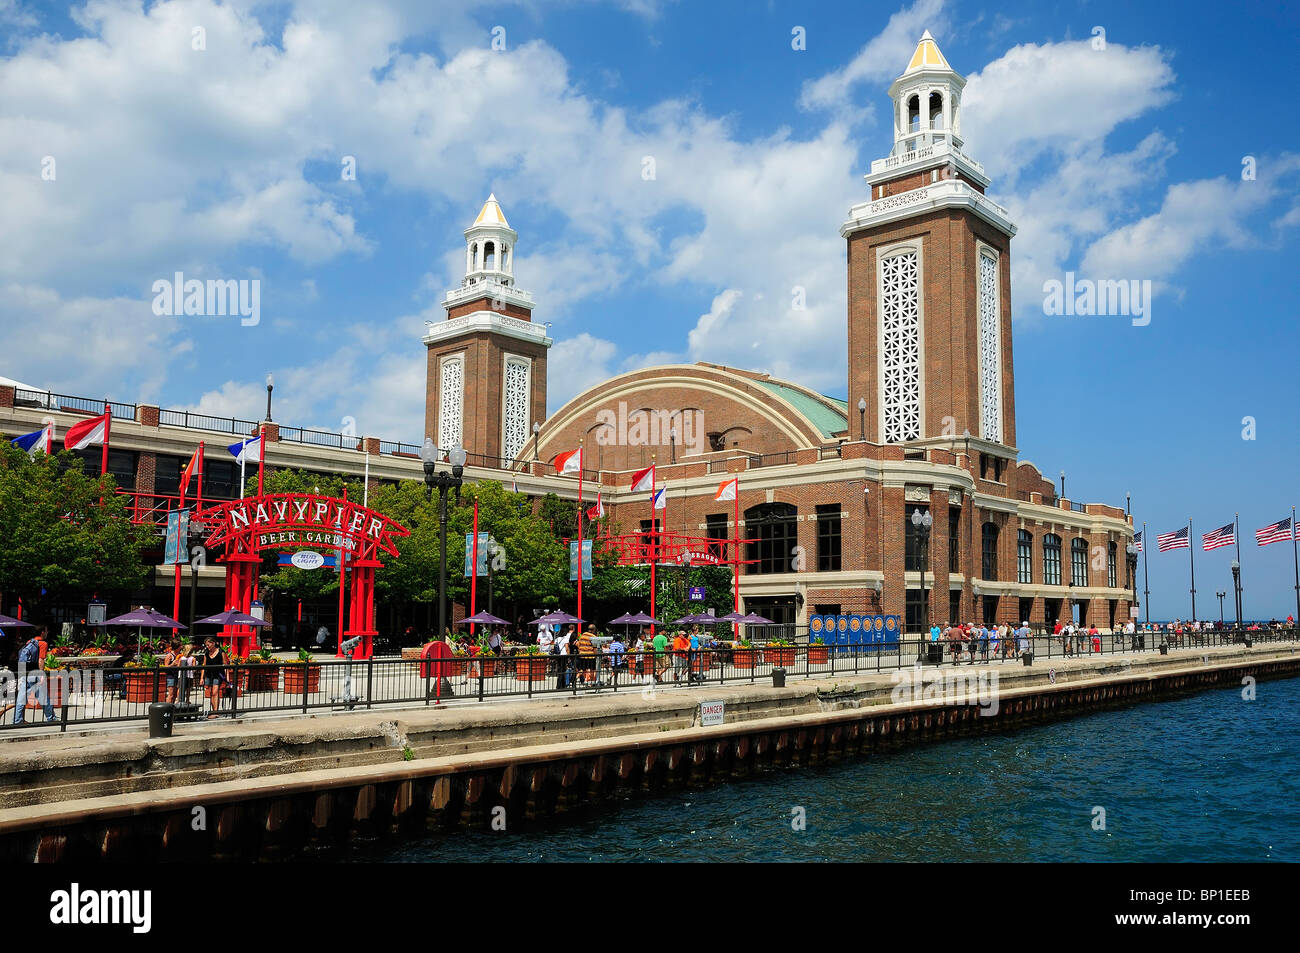 View Of Exhibition / Convention Hall At The Historic Navy Pier In Chicago. Beer  Garden